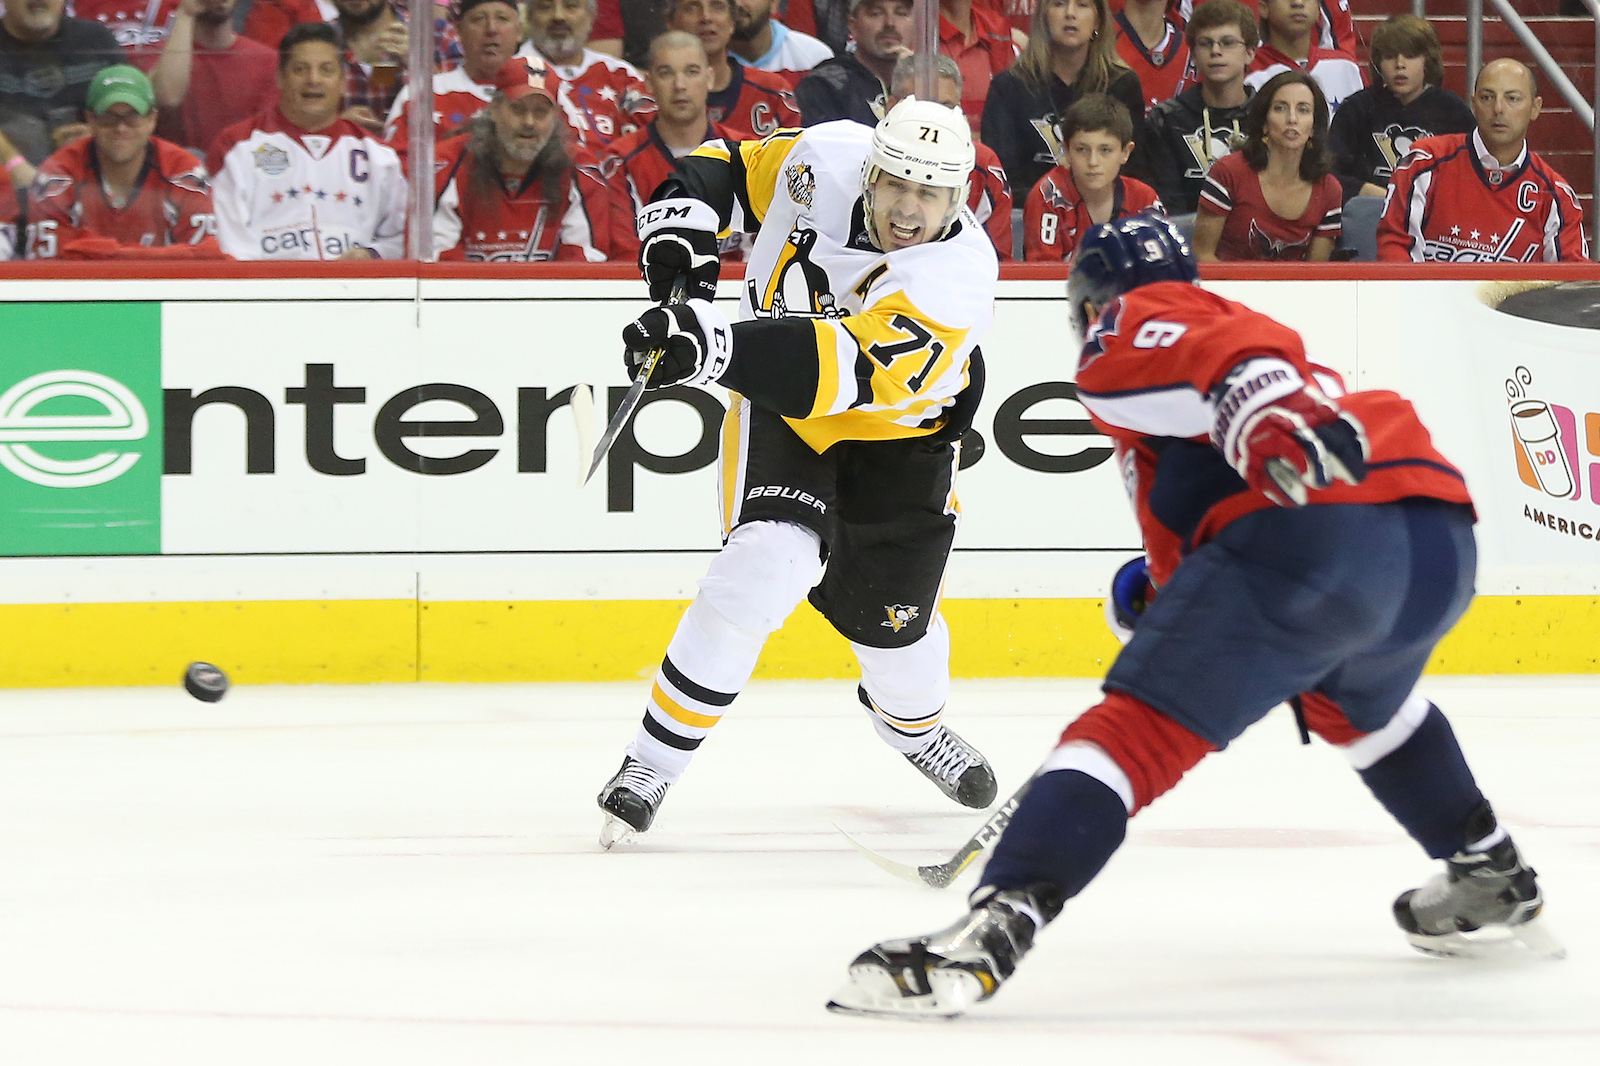 Apr 29, 2017; Washington, DC, USA; Pittsburgh Penguins center Evgeni Malkin (71) shoots the puck past Washington Capitals defenseman Dmitry Orlov (9) during the second period in game two of the second round of the 2017 Stanley Cup Playoffs at Verizon Center. Mandatory Credit: Geoff Burke-USA TODAY Sports